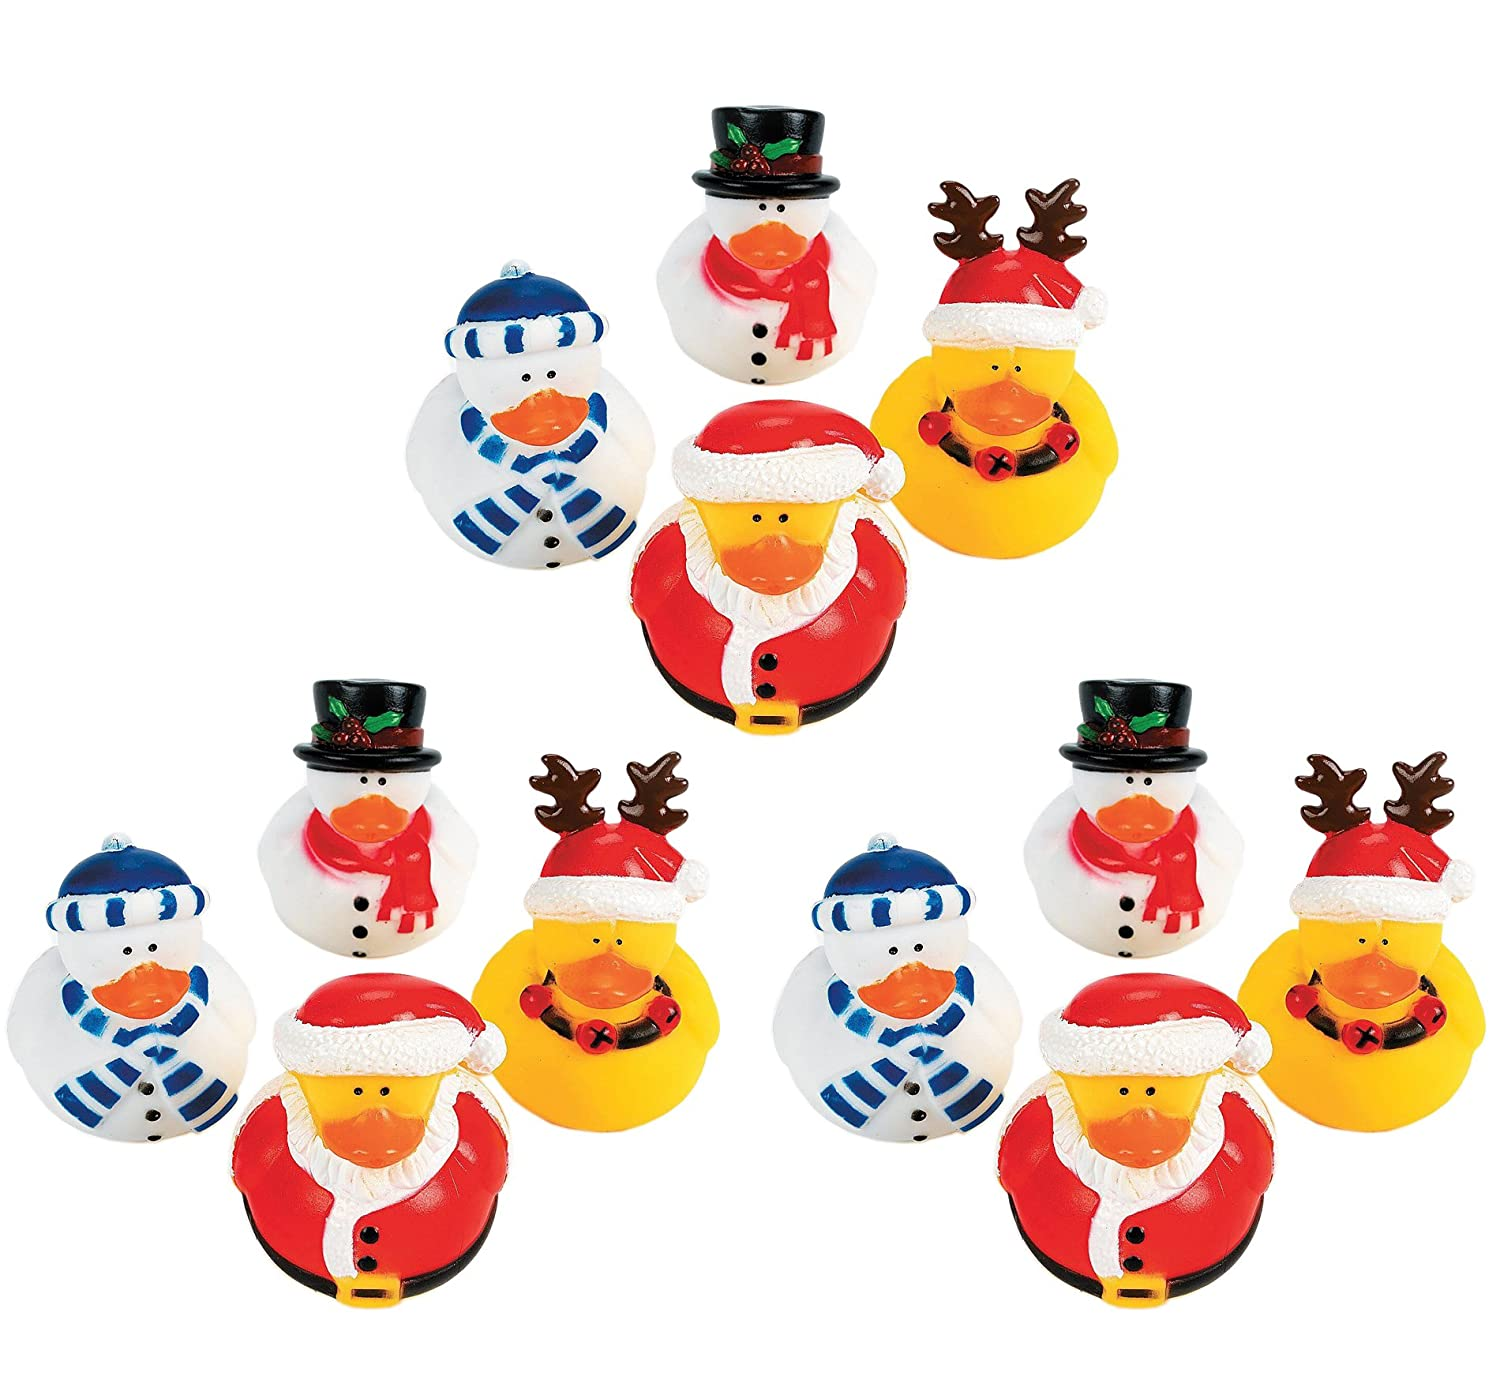 Christmas Rubber Ducky - 12 Count